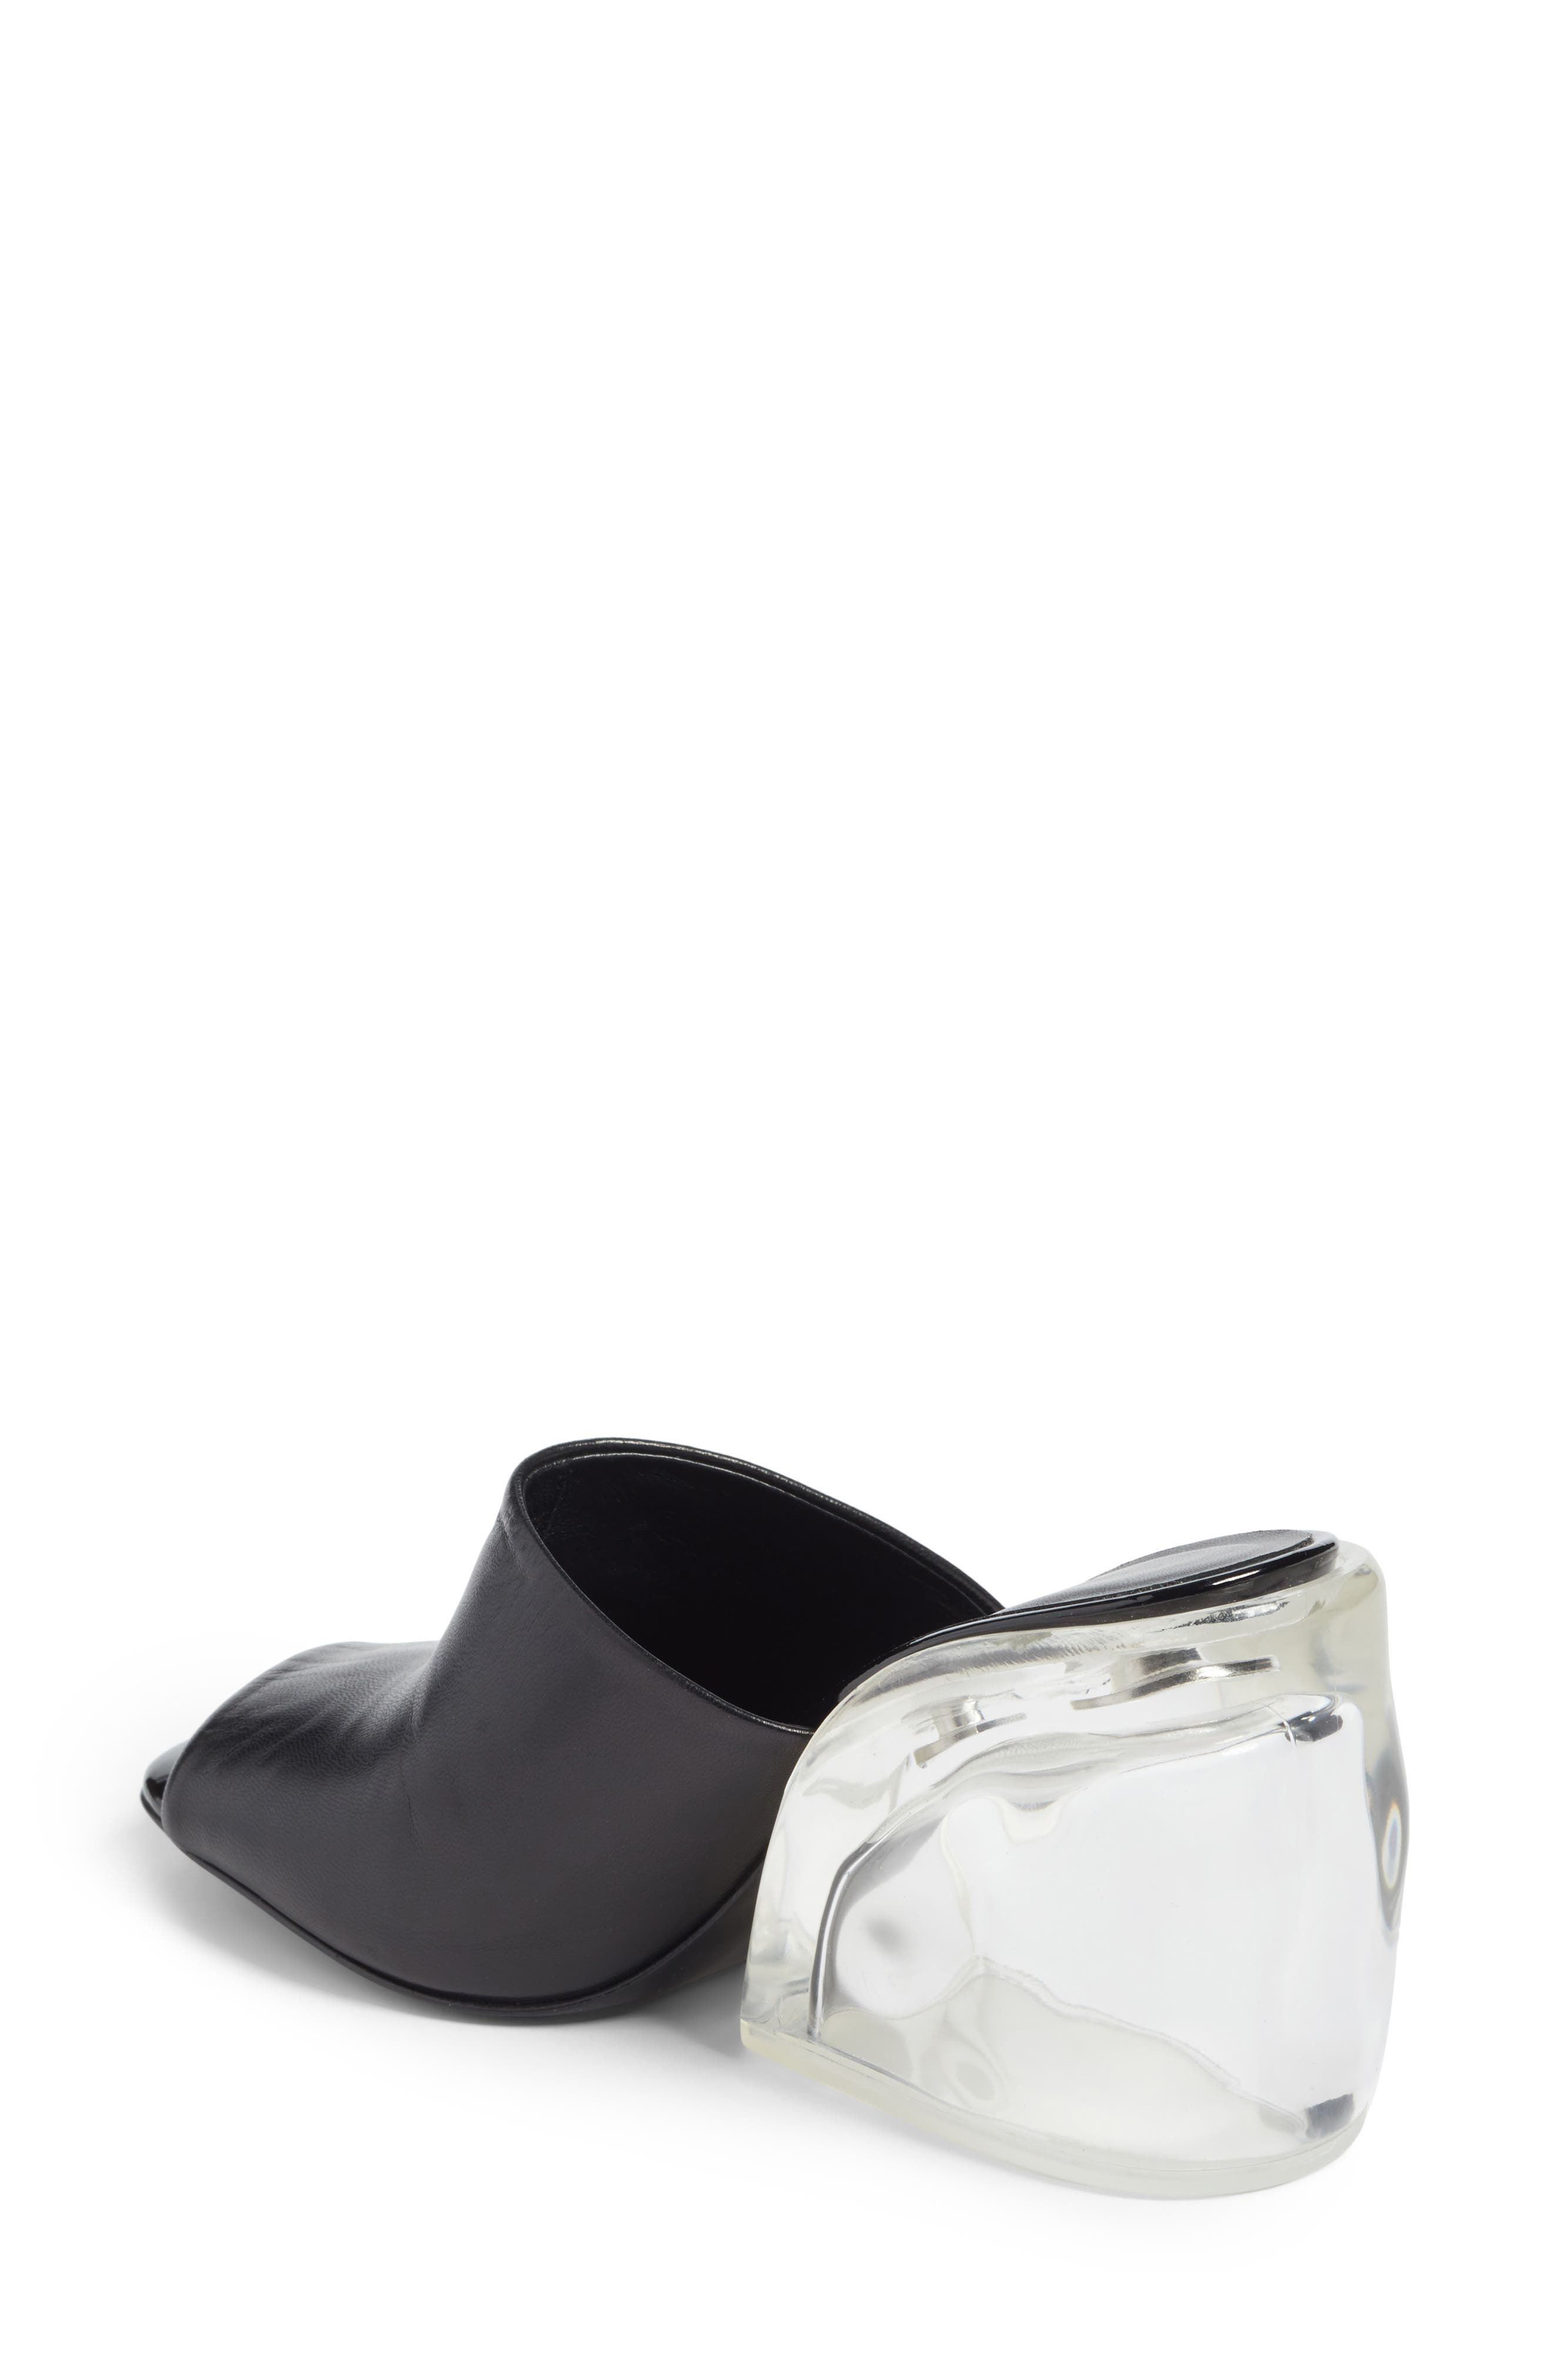 Transparent Wedge Slide Sandal,                             Alternate thumbnail 2, color,                             BLACK